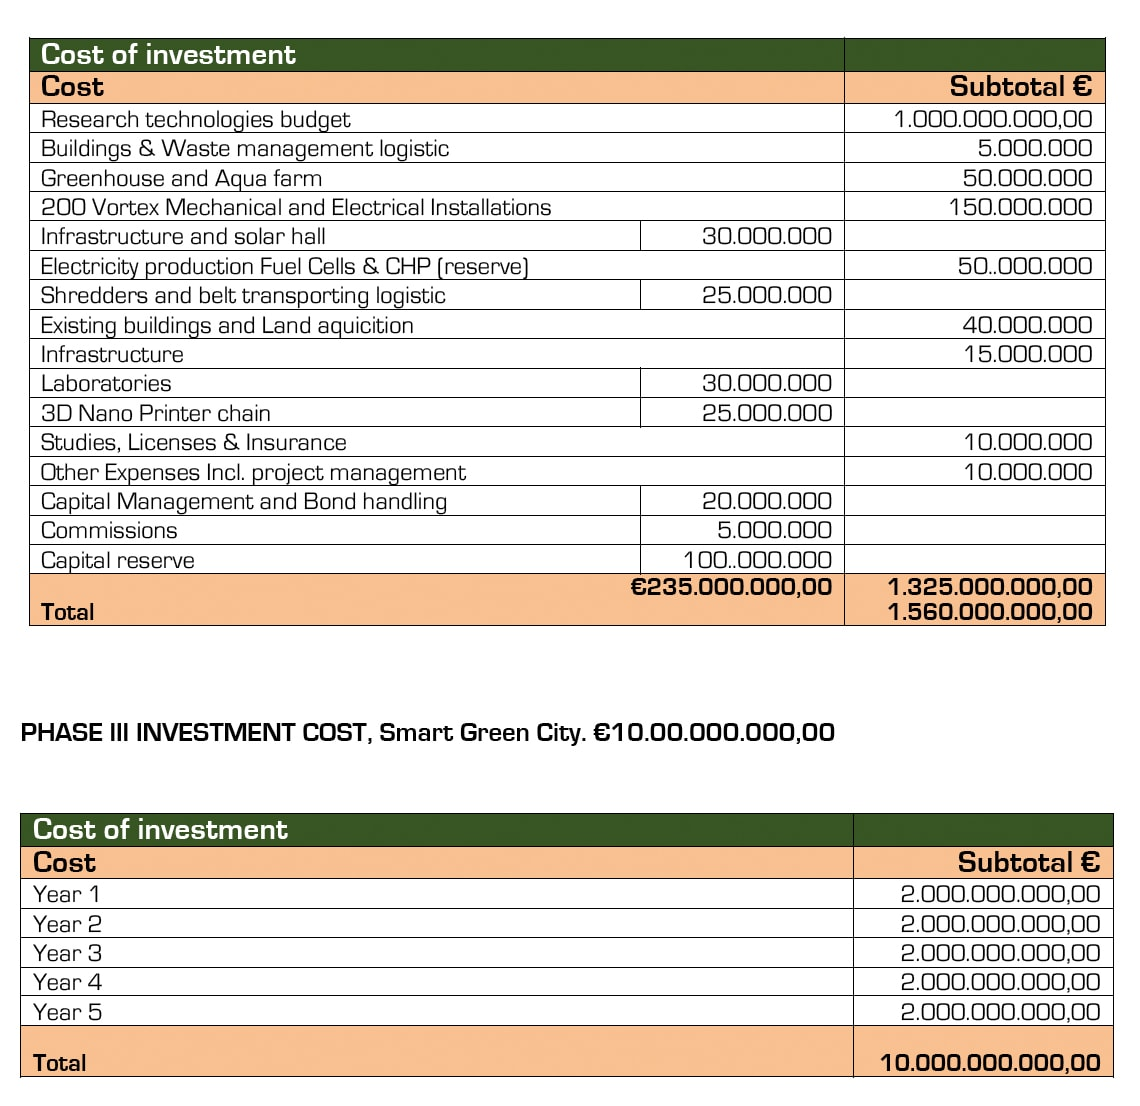 Investment cost details